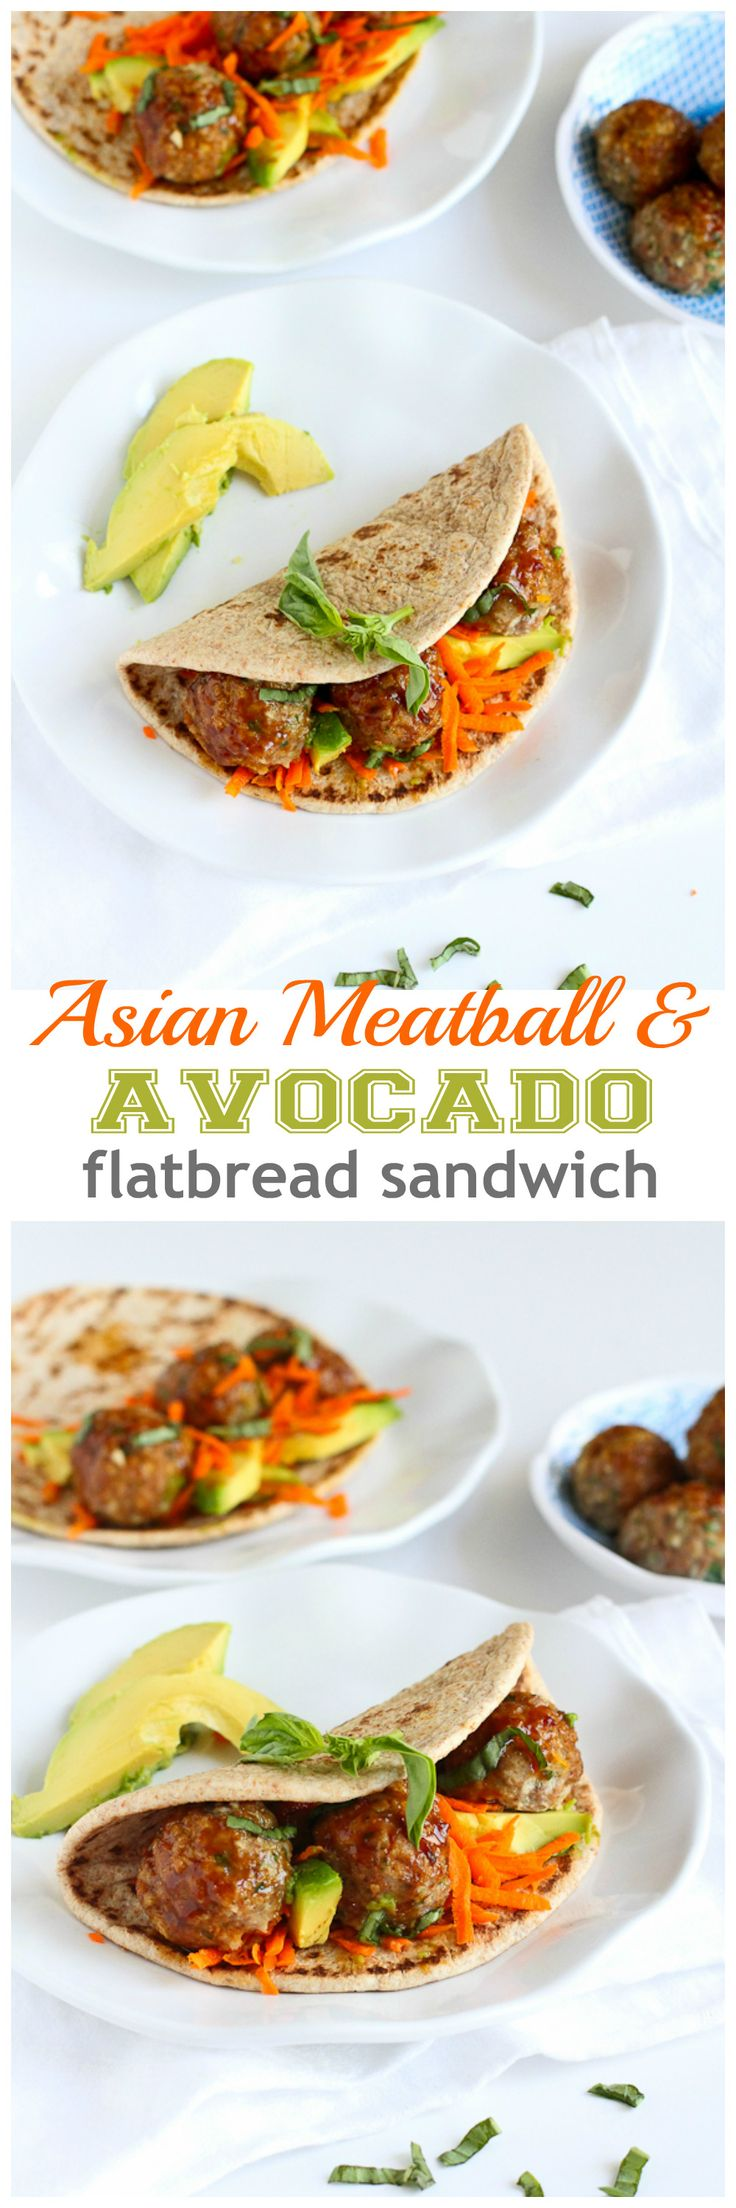 Asian Meatball and Avocado Flatbread Sandwich Recipe...Amazing flavors! 341 calories and 9 Weight Watchers PP   cookincanuck.com